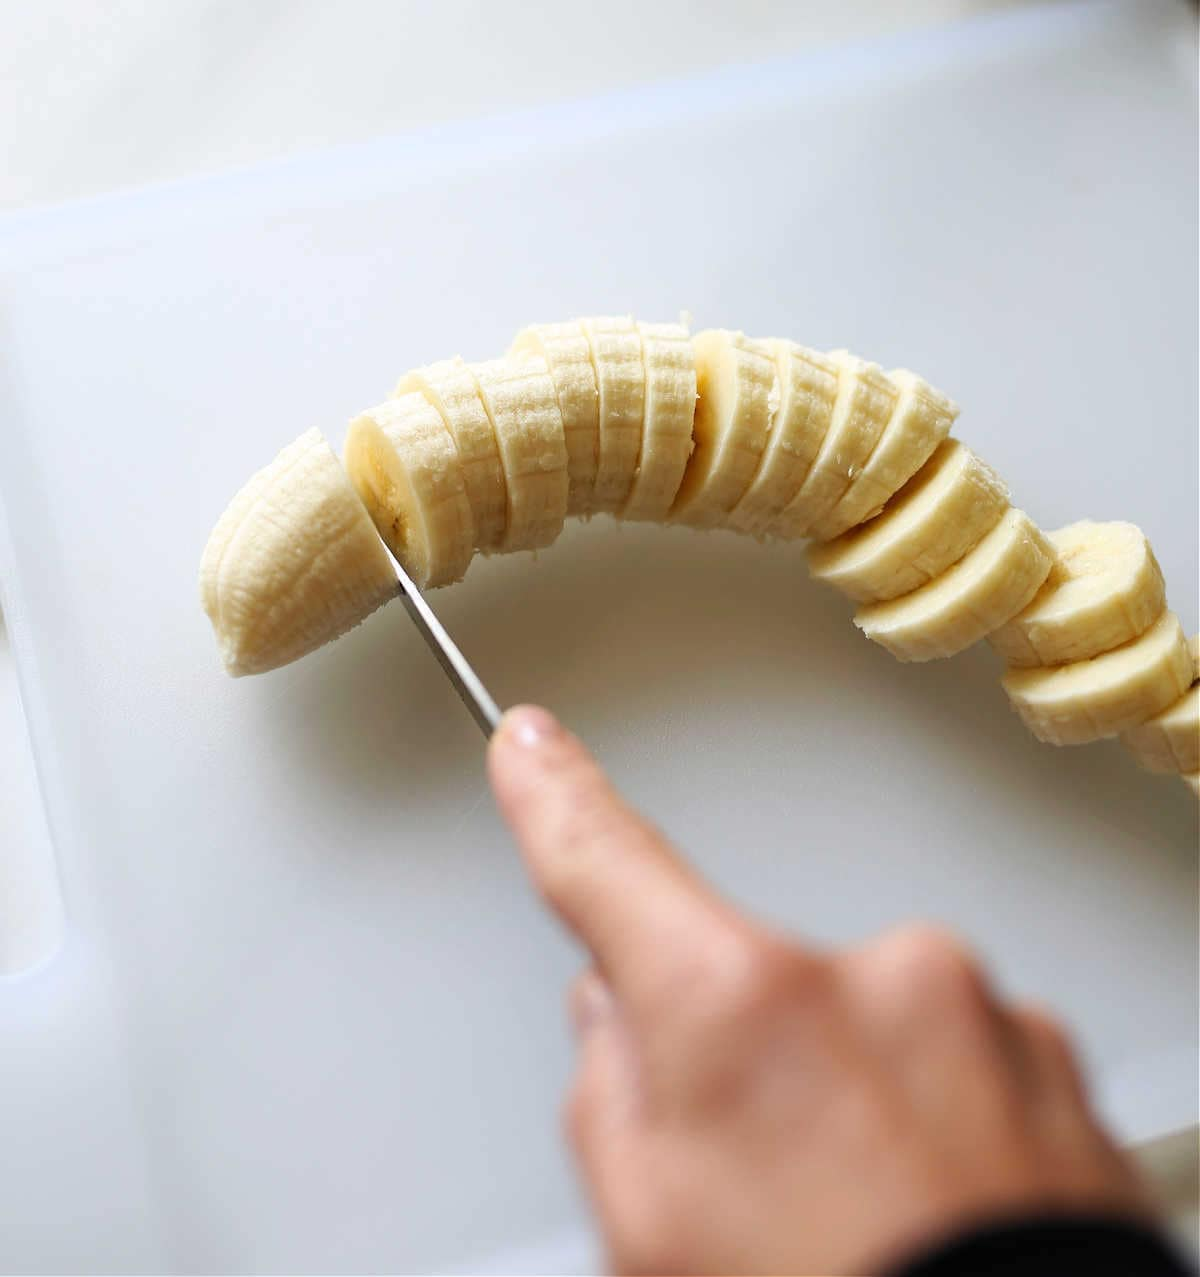 hand using a knife to slice bananas for freezing